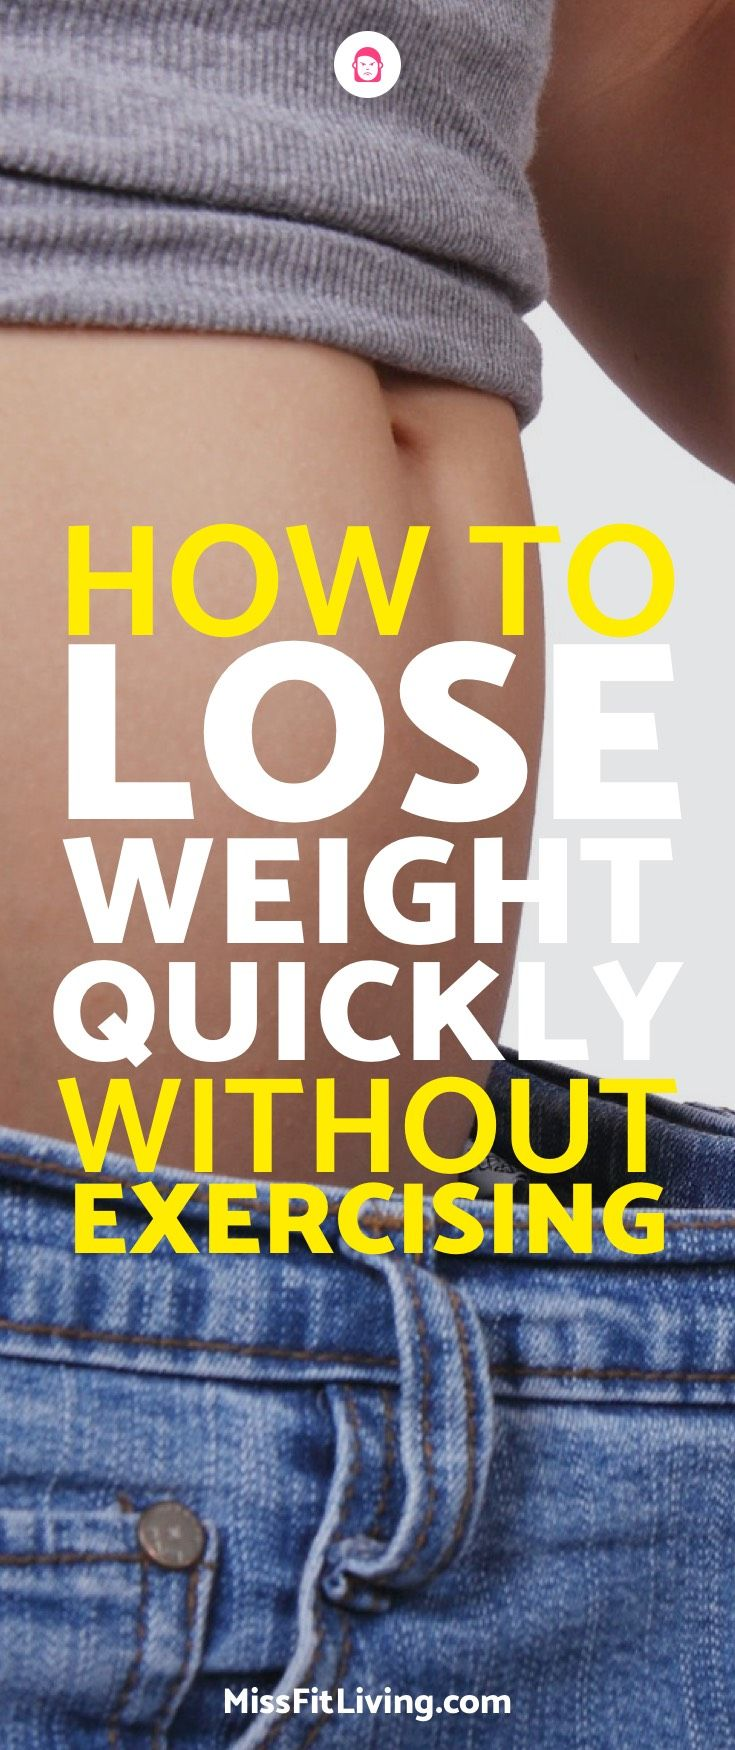 How much weight can you lose in 2 weeks juice fasting picture 4